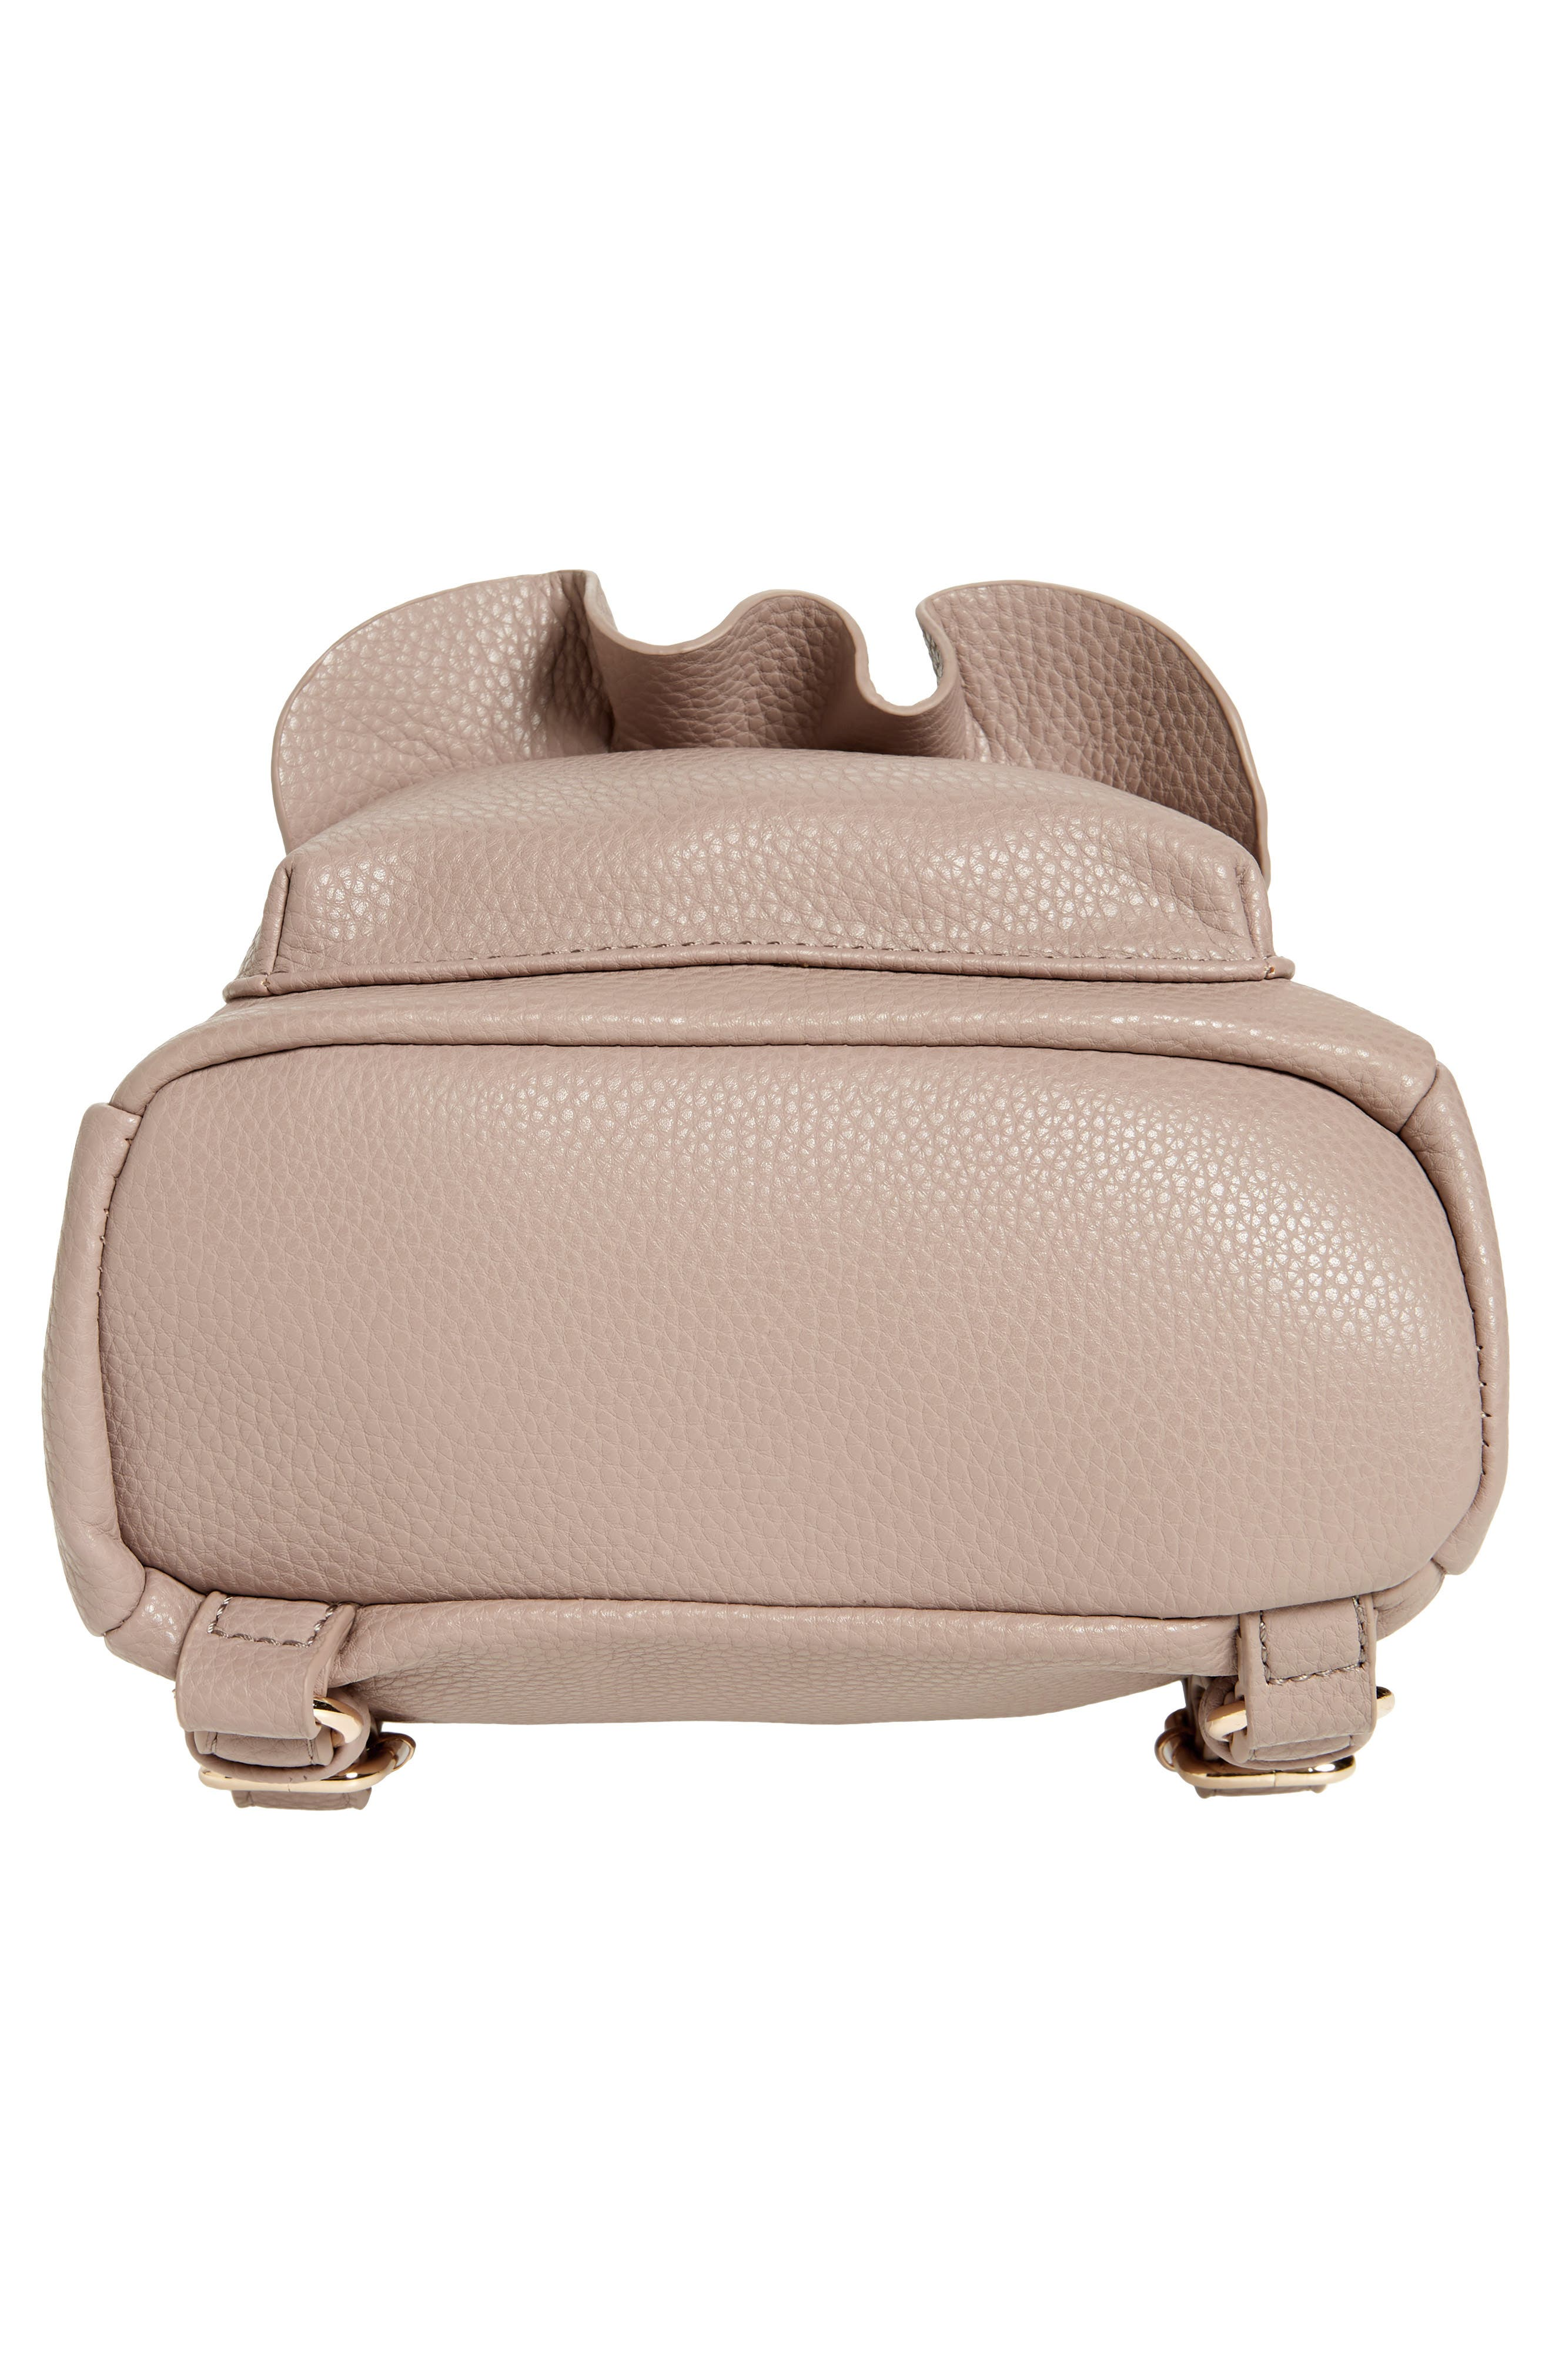 Tracie Mini Faux Leather Backpack,                             Alternate thumbnail 6, color,                             Taupe